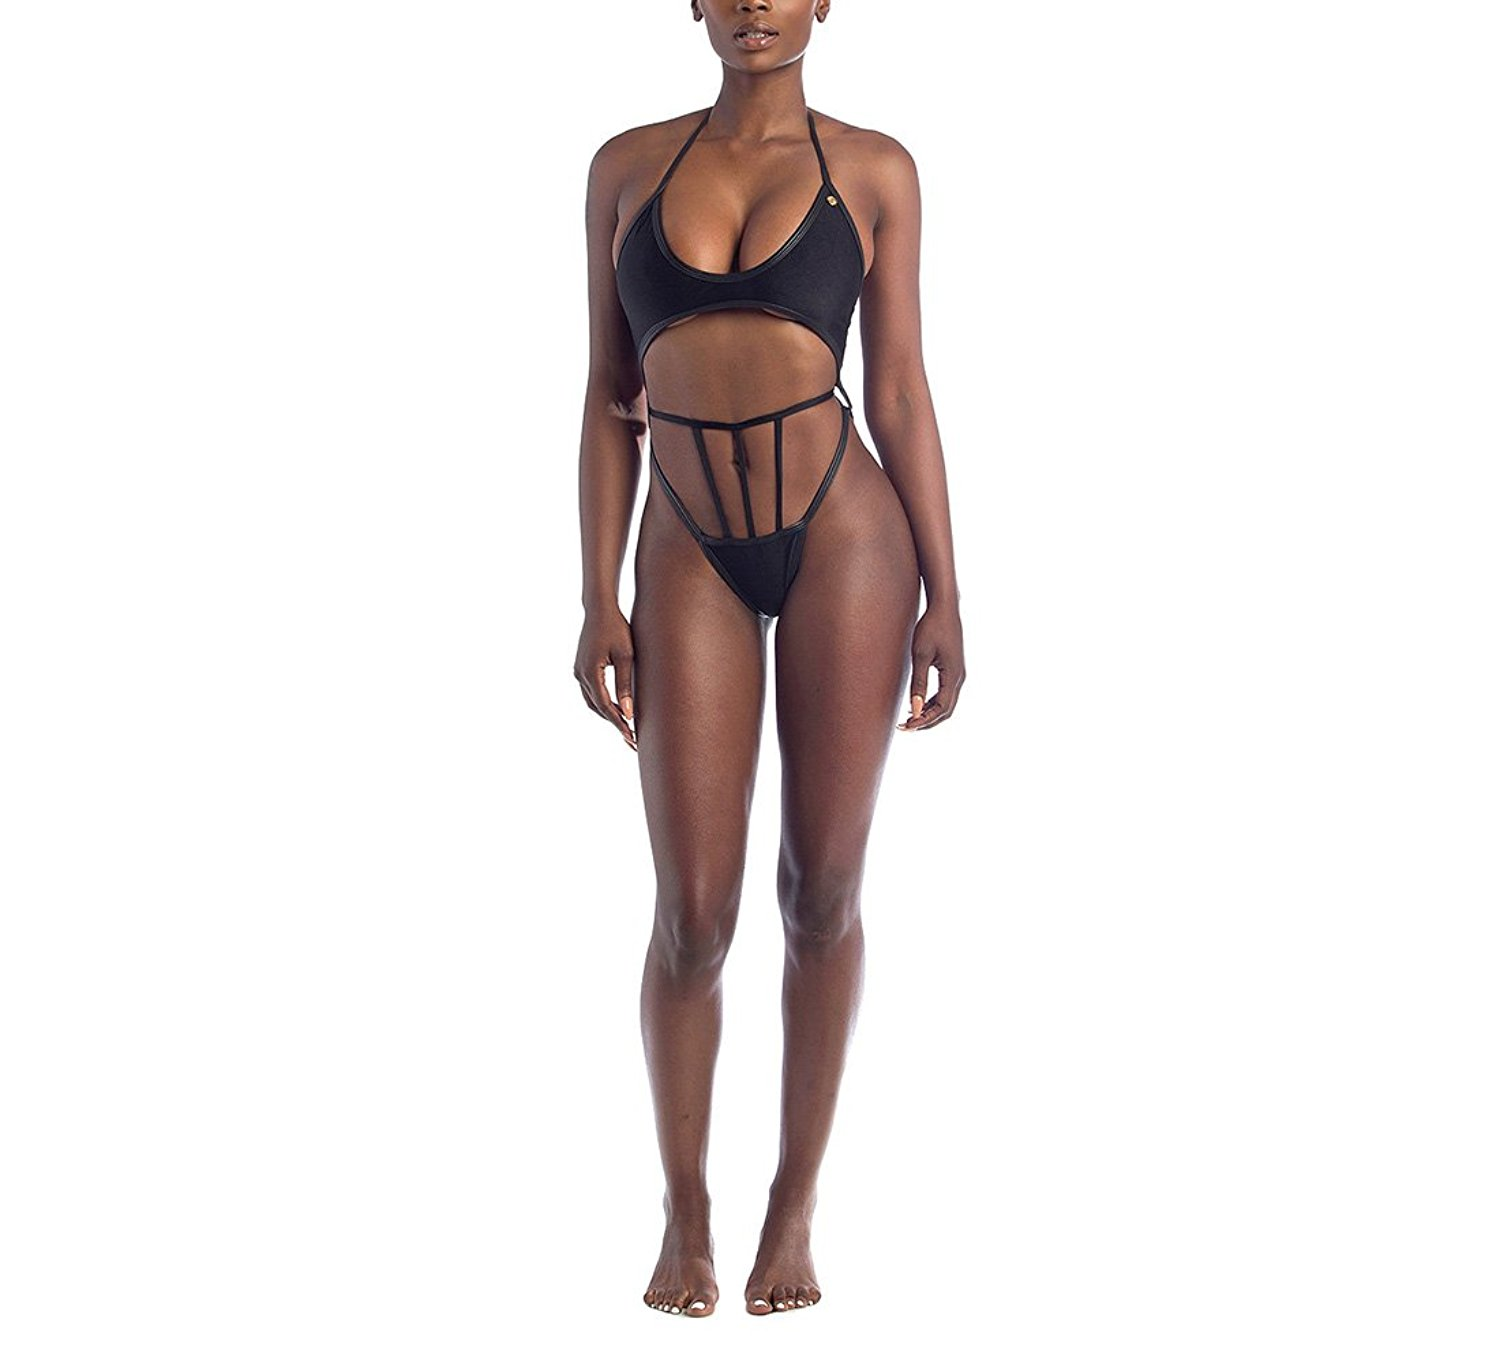 Kissprom Sexy Plunge Adjustable Straps Lace-up Bandage One Piece Swimsuit High Cut Racer-Back Slim Fit Swimwear at Amazon Women's Clothing store: